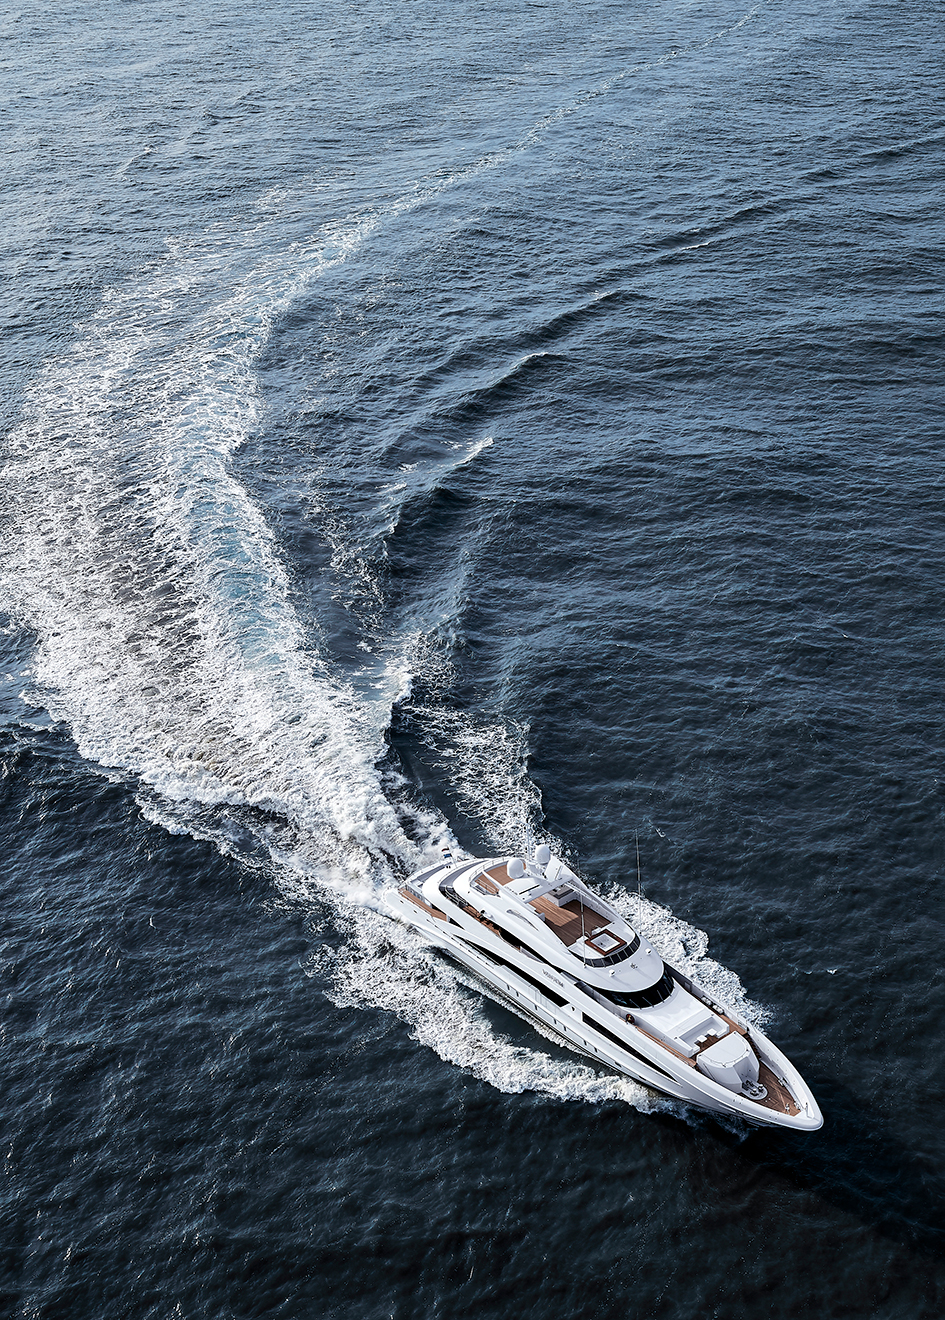 aerial-view-of-the-heesen-super-yacht-van-tom-credit-dick-holthuis